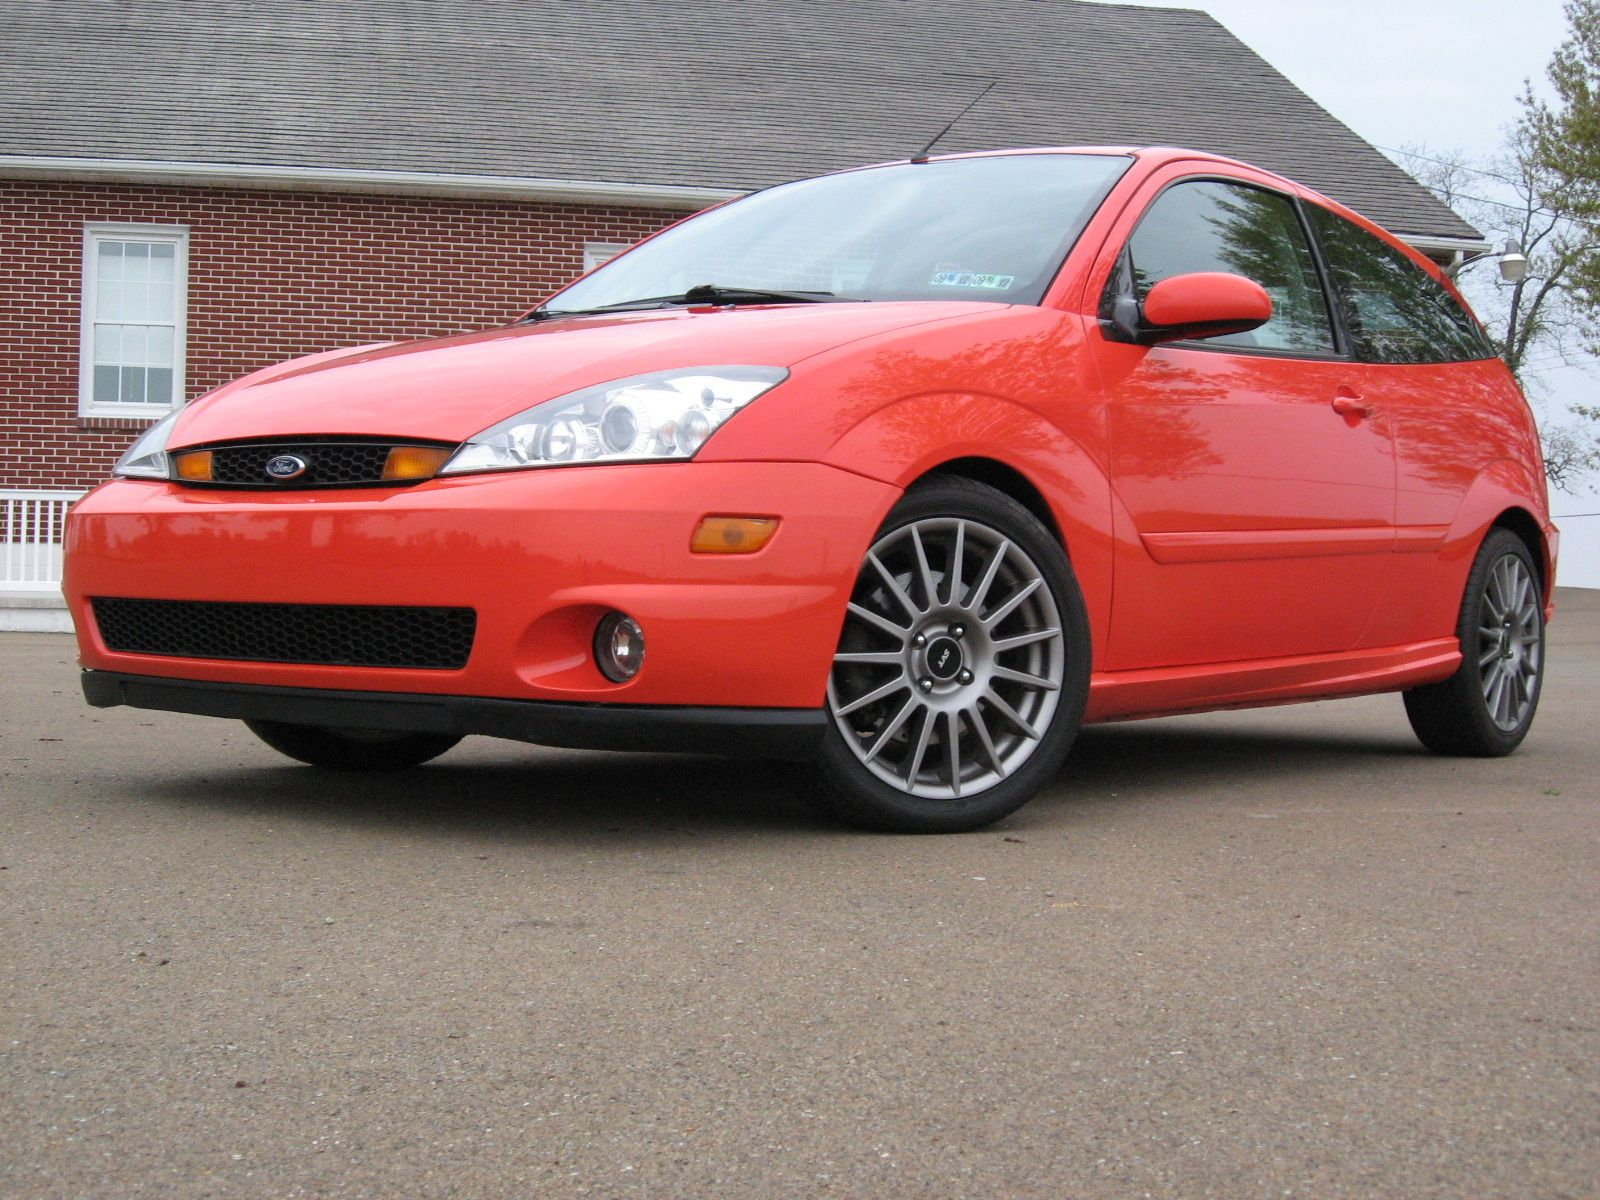 70f3a2df3804896b07d24c9413b527c8 Interesting Info About 2004 Svt Focus